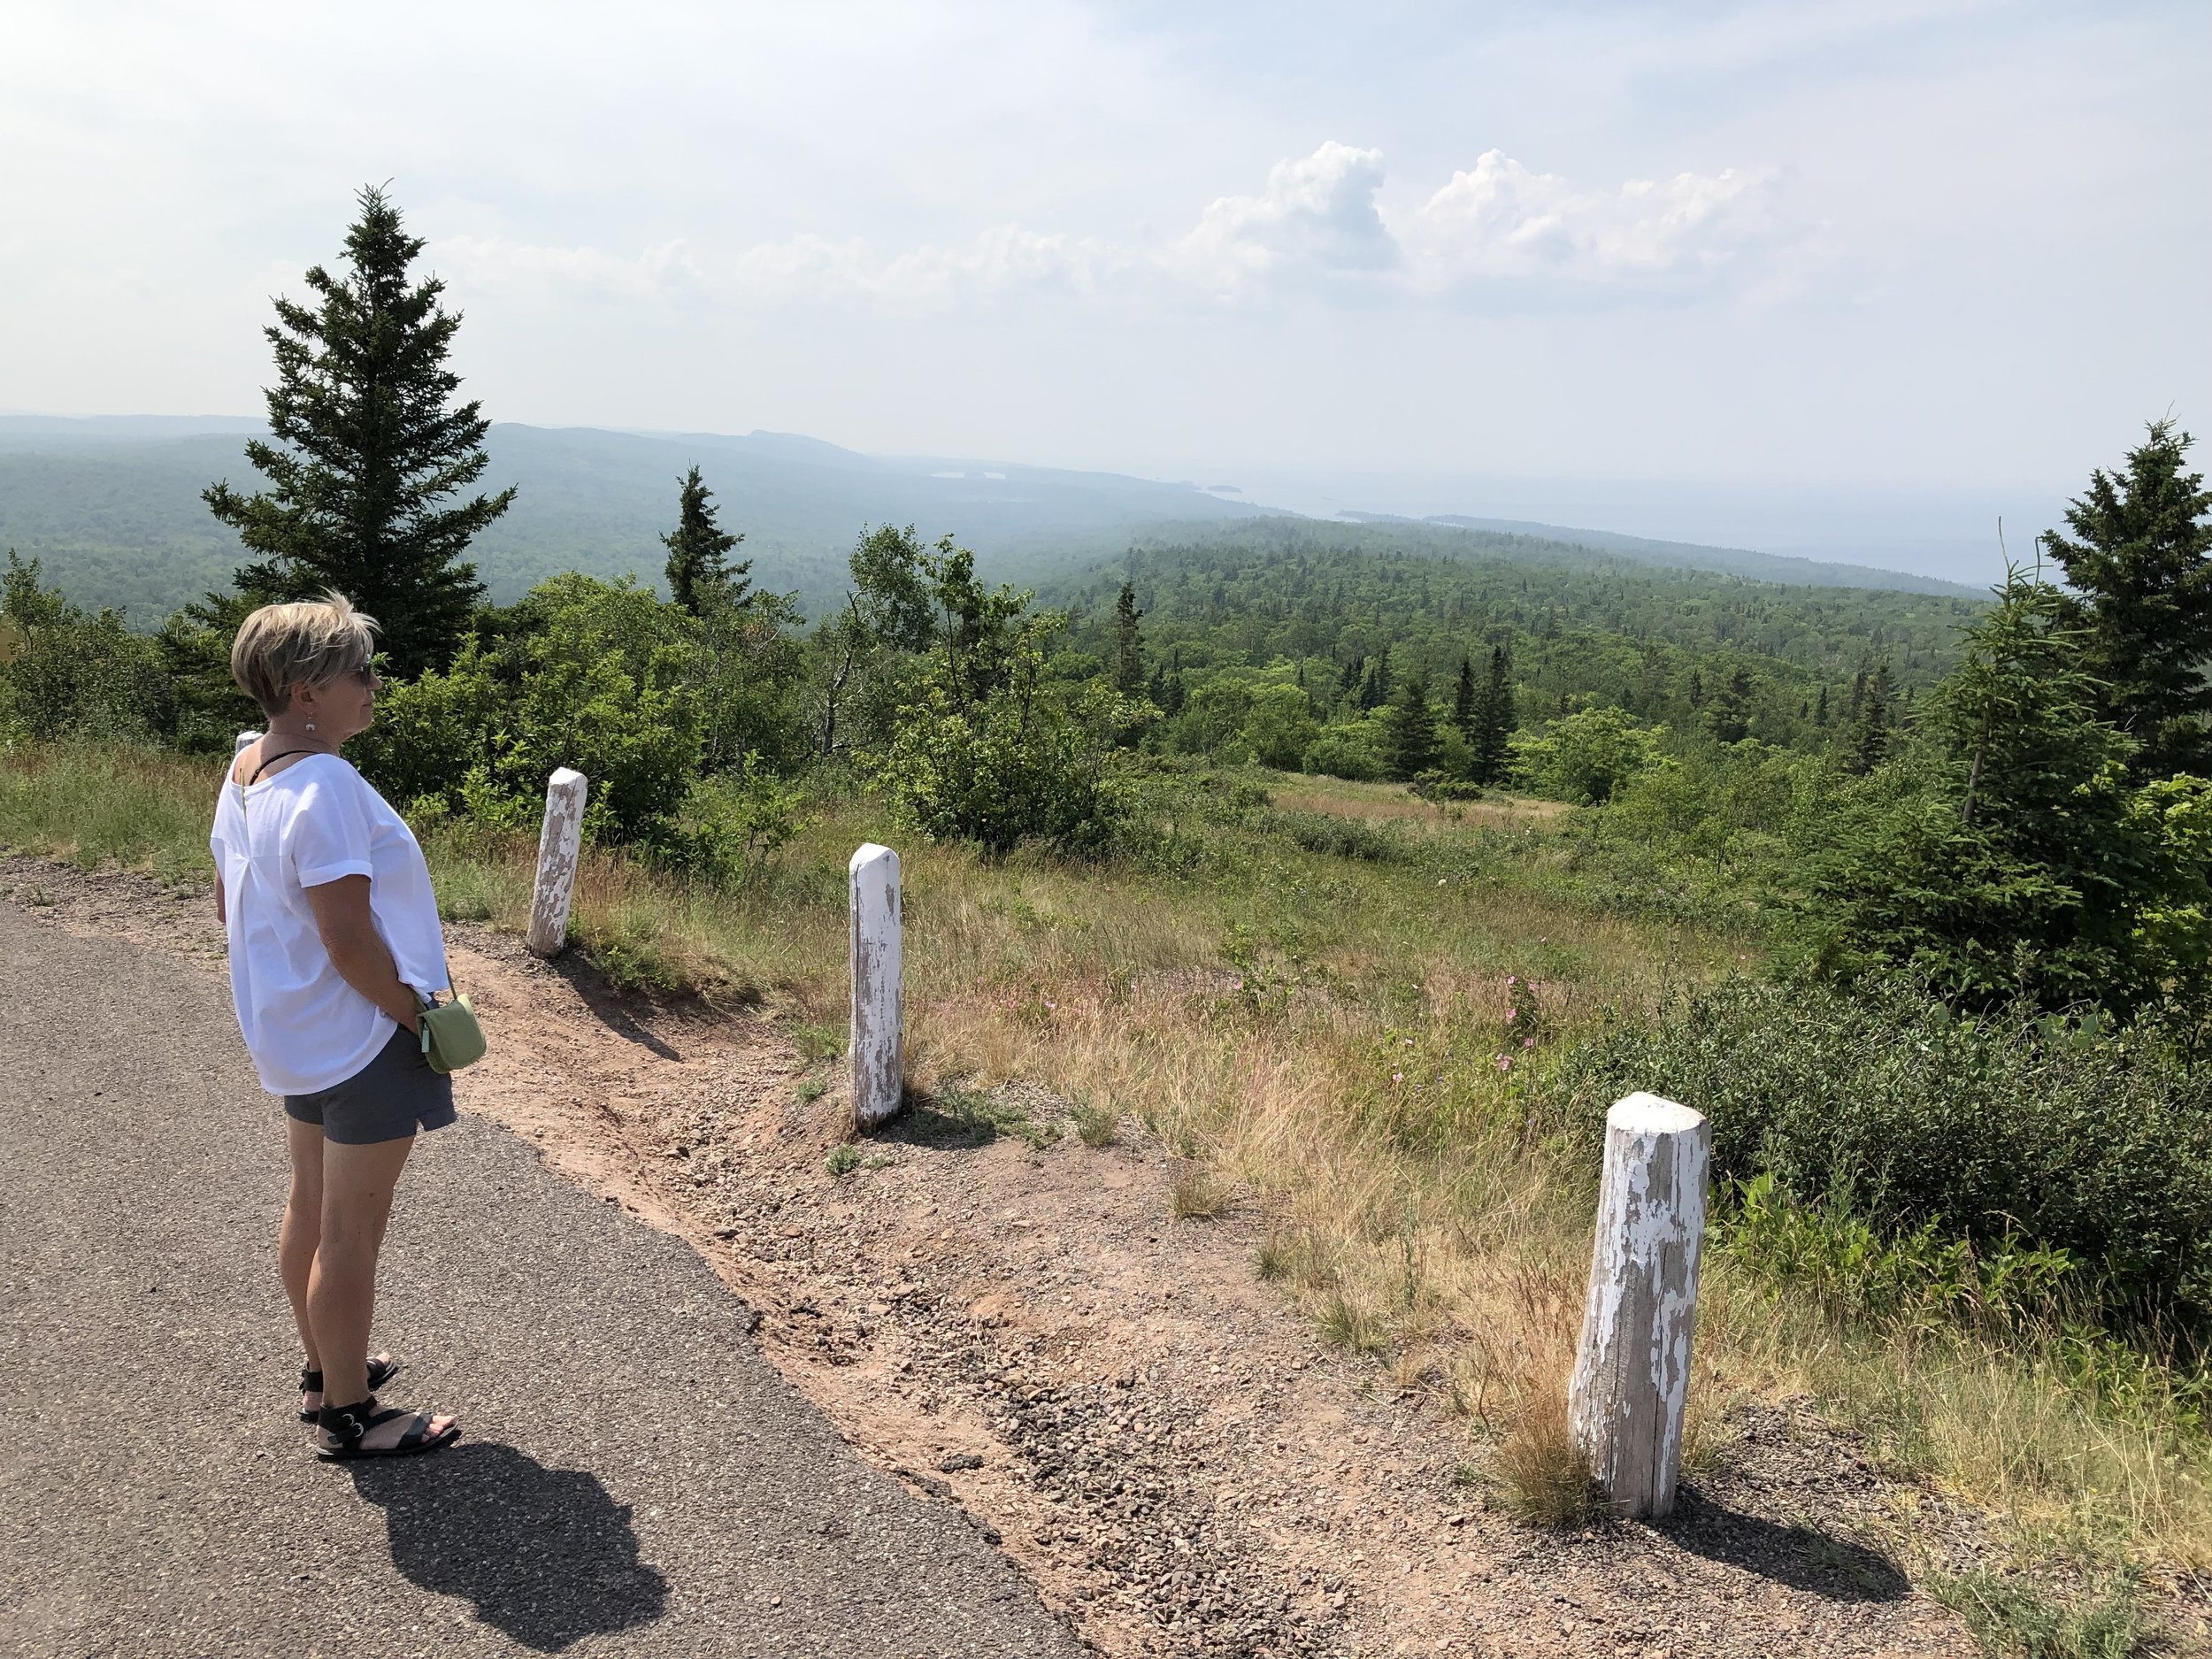 Sandy, looking northwest from Brockway Mountain. She made sure I knew the haziness was from Canadian wildfires. The views are usually crystal clear.